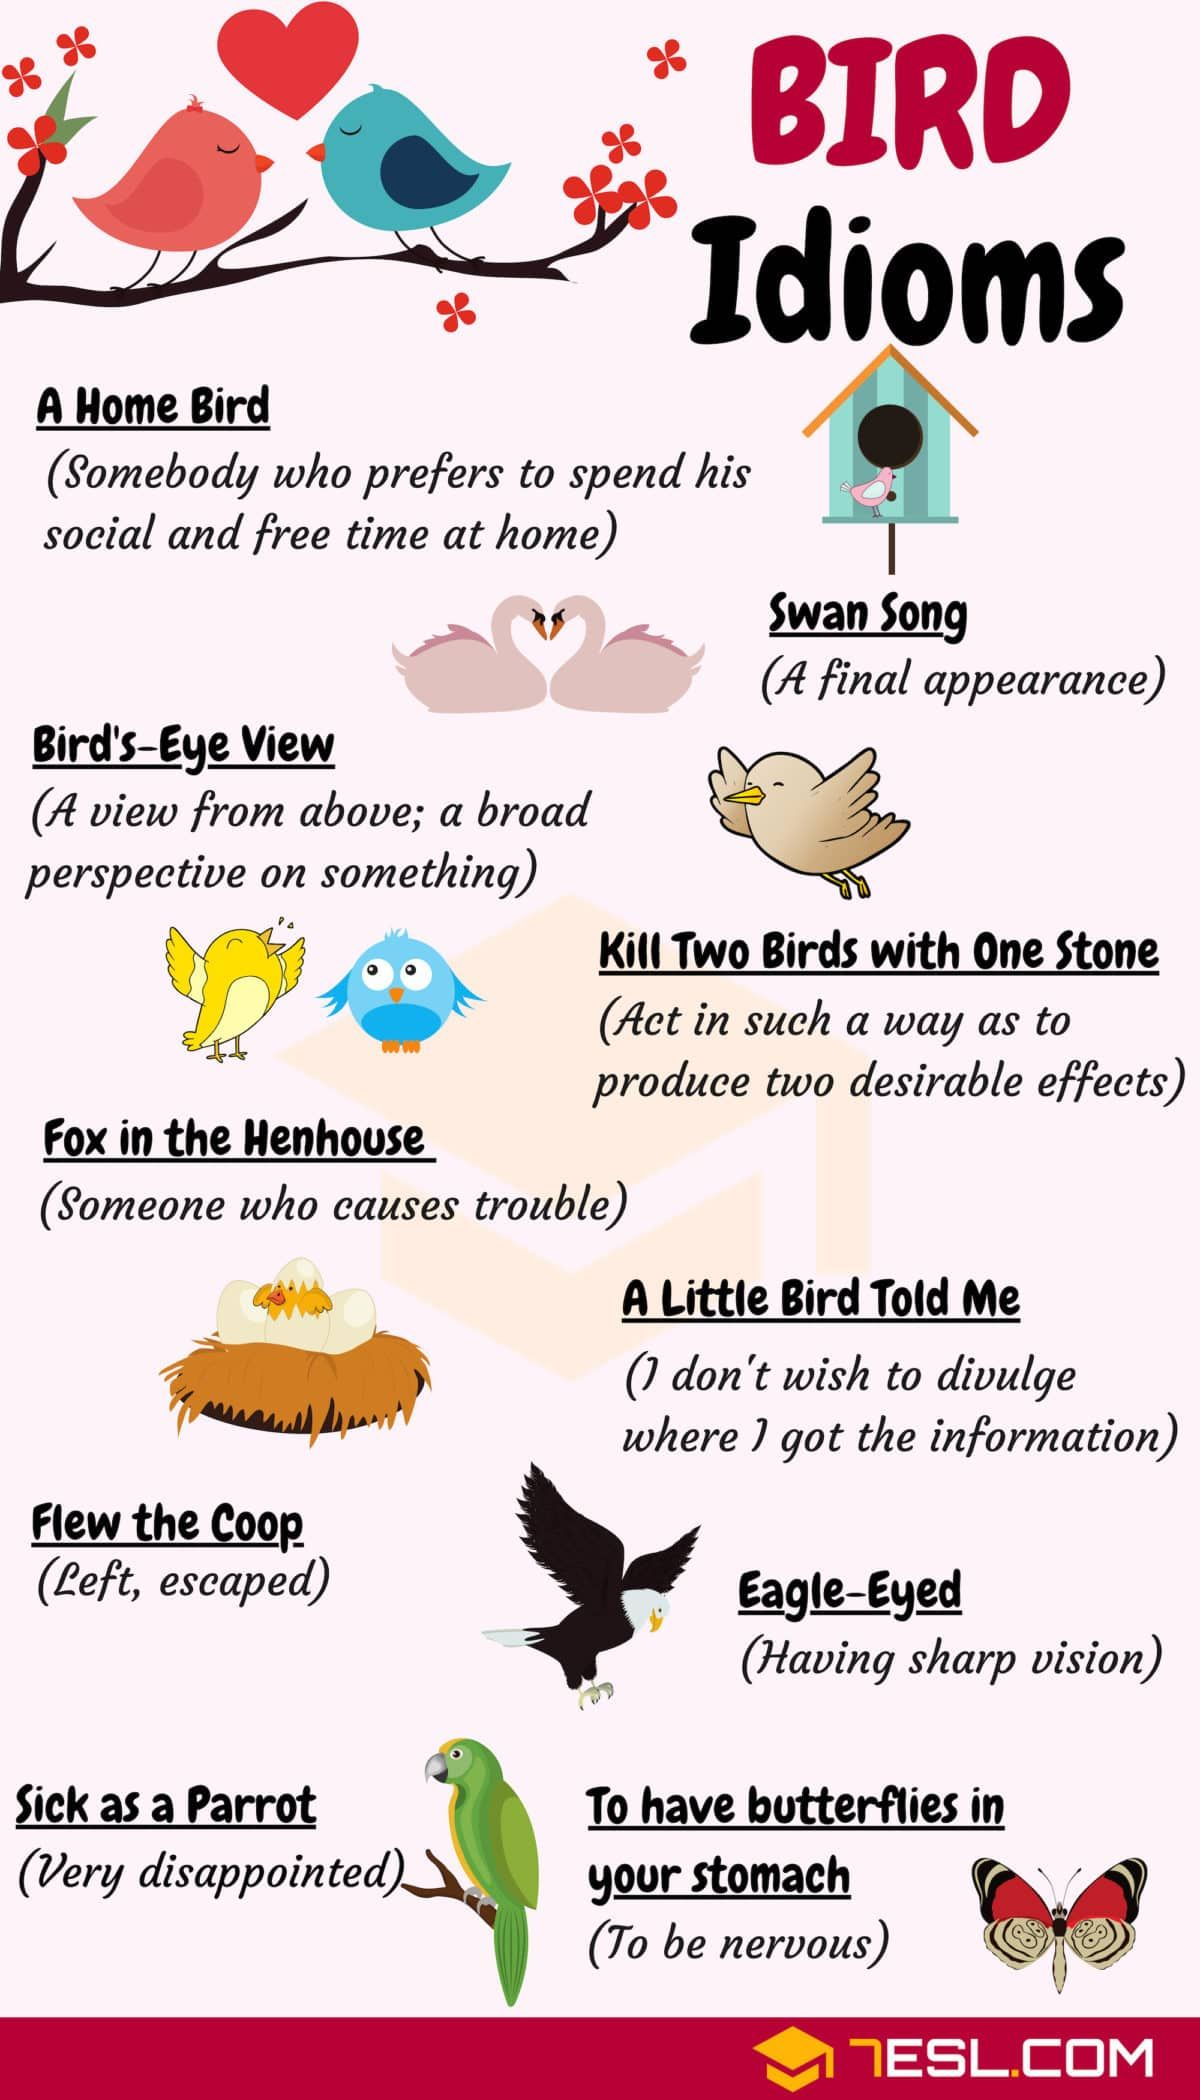 Bird Idioms 27 Useful Phrases And Idioms About Birds